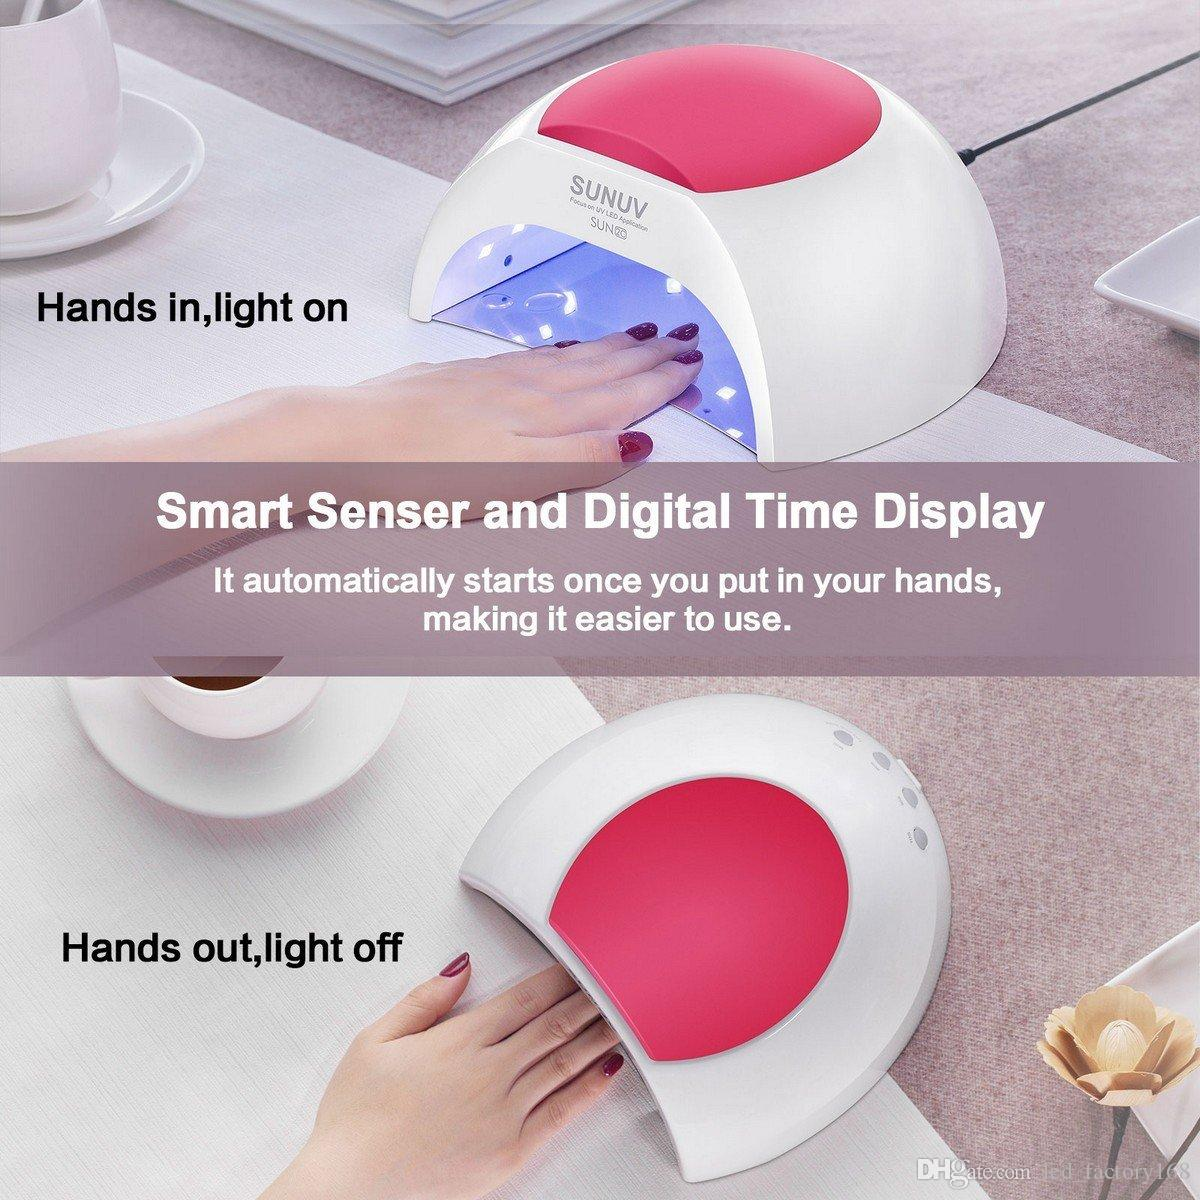 SUN2C 48W LED UV Nail Lamp Cures Polish Lights with 4 Timer Setting Senor For Gel Nails and Toe Nail Curing Hands dry